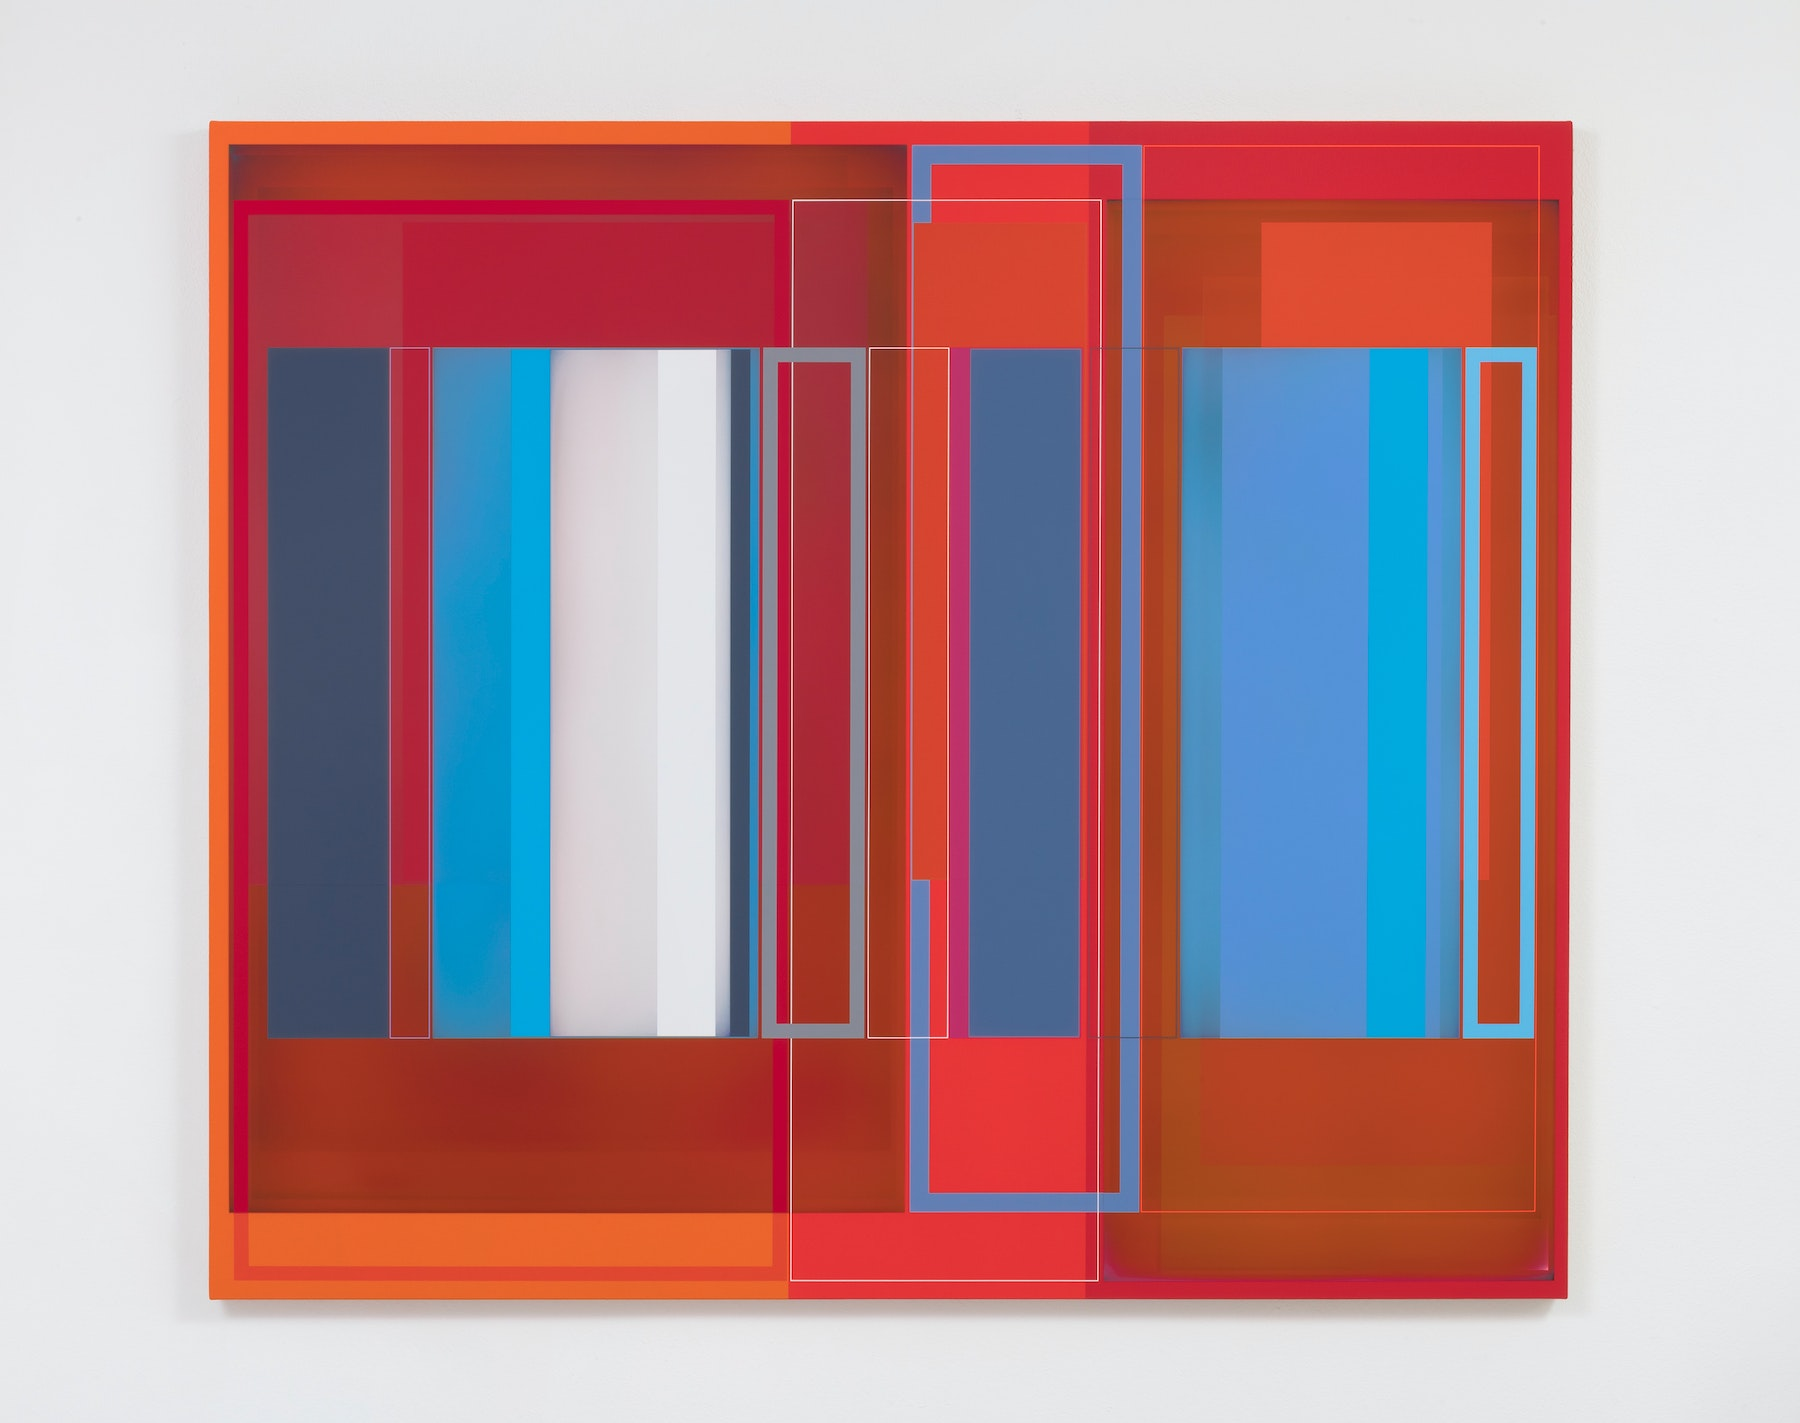 """Patrick Wilson """"Hot Beat,"""" 2020 Acrylic on canvas 57"""" x 66"""" [HxW] (144.78 x 167.64 cm) Inventory #WIL574 Courtesy of the artist and Vielmetter Los Angeles Photo credit: Robert Wedemeyer"""